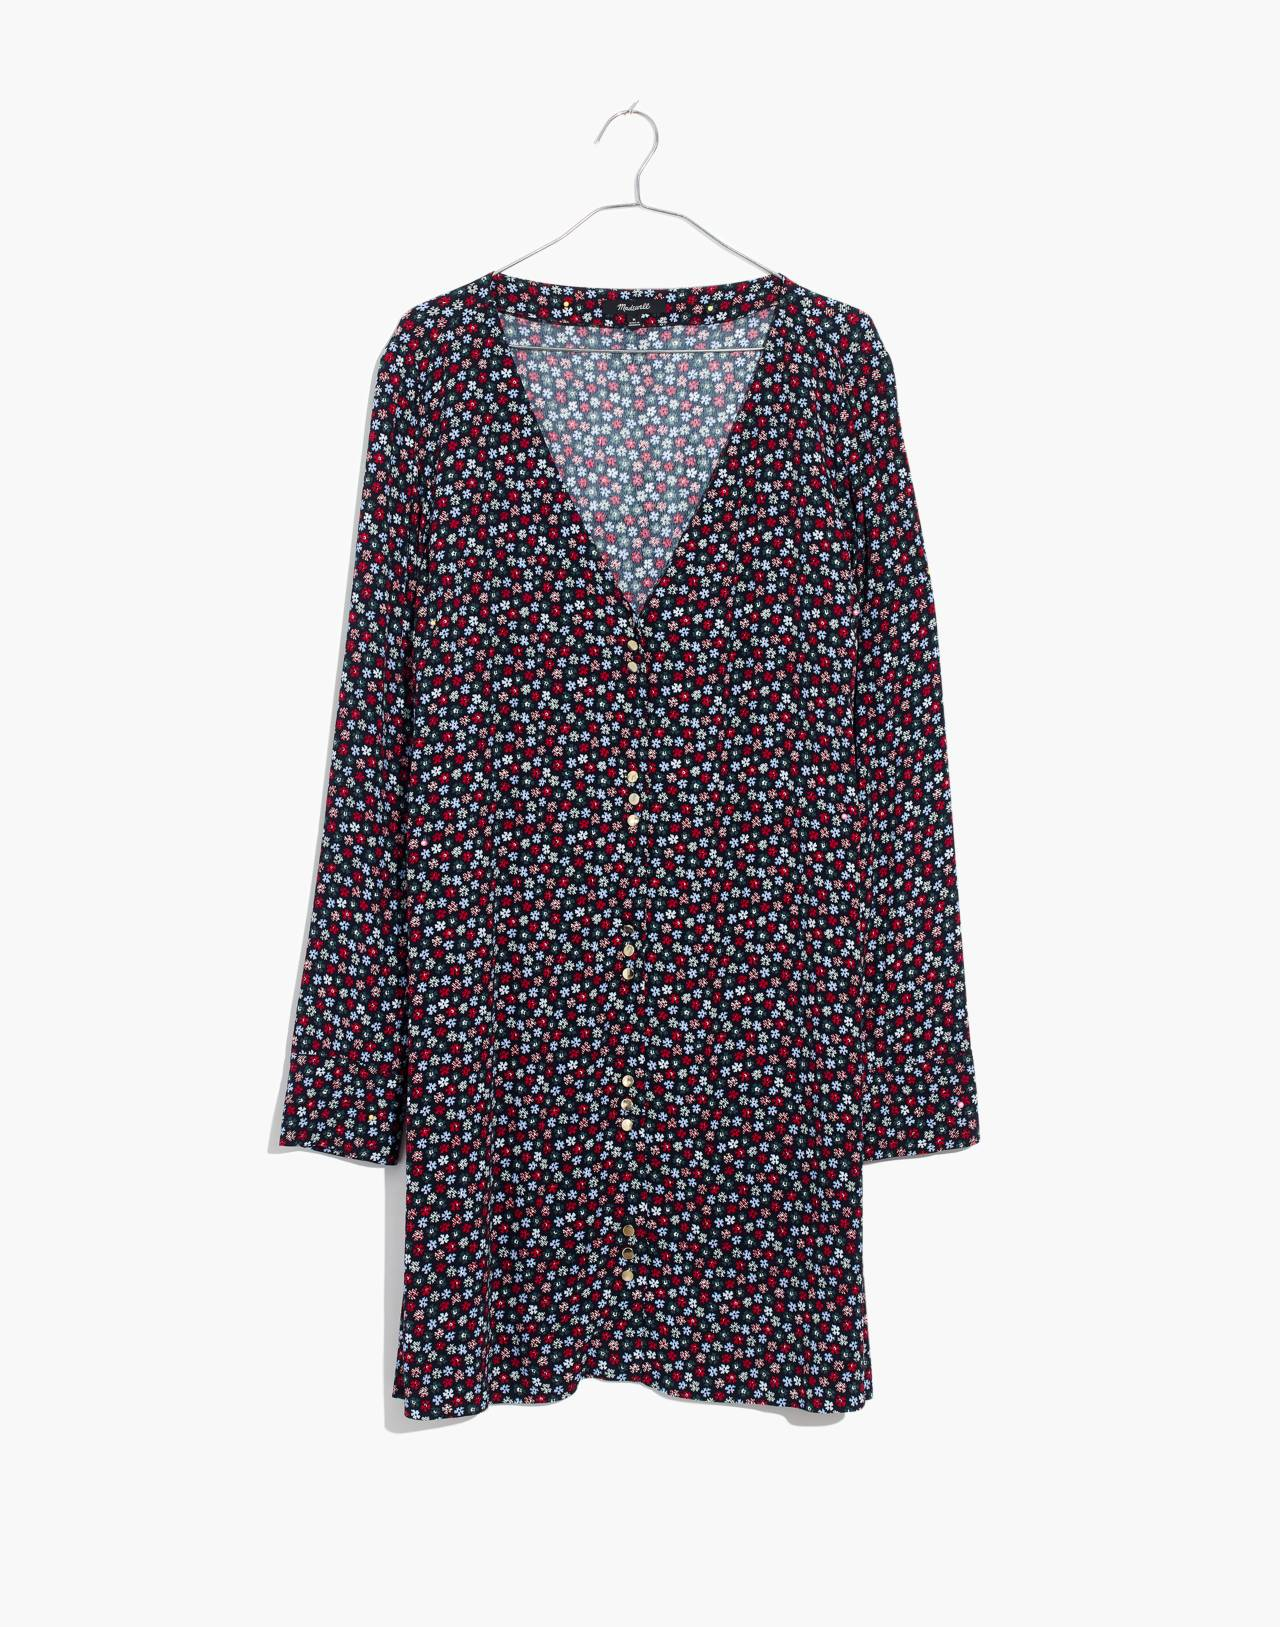 Button-Front Mini Dress in Petite Blooms in calico deep navy image 4